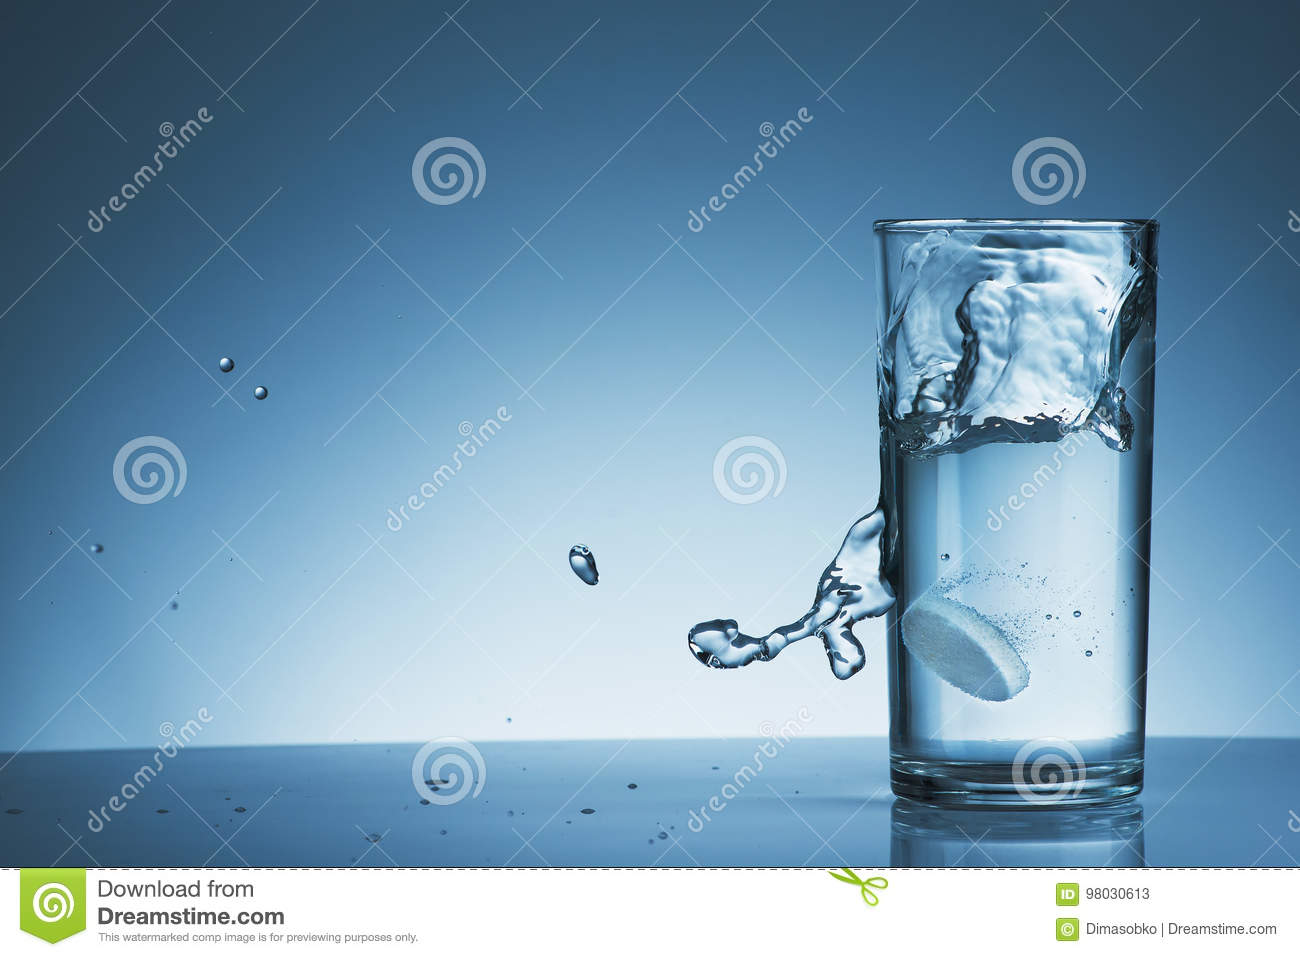 Effervescent tablet in a glass